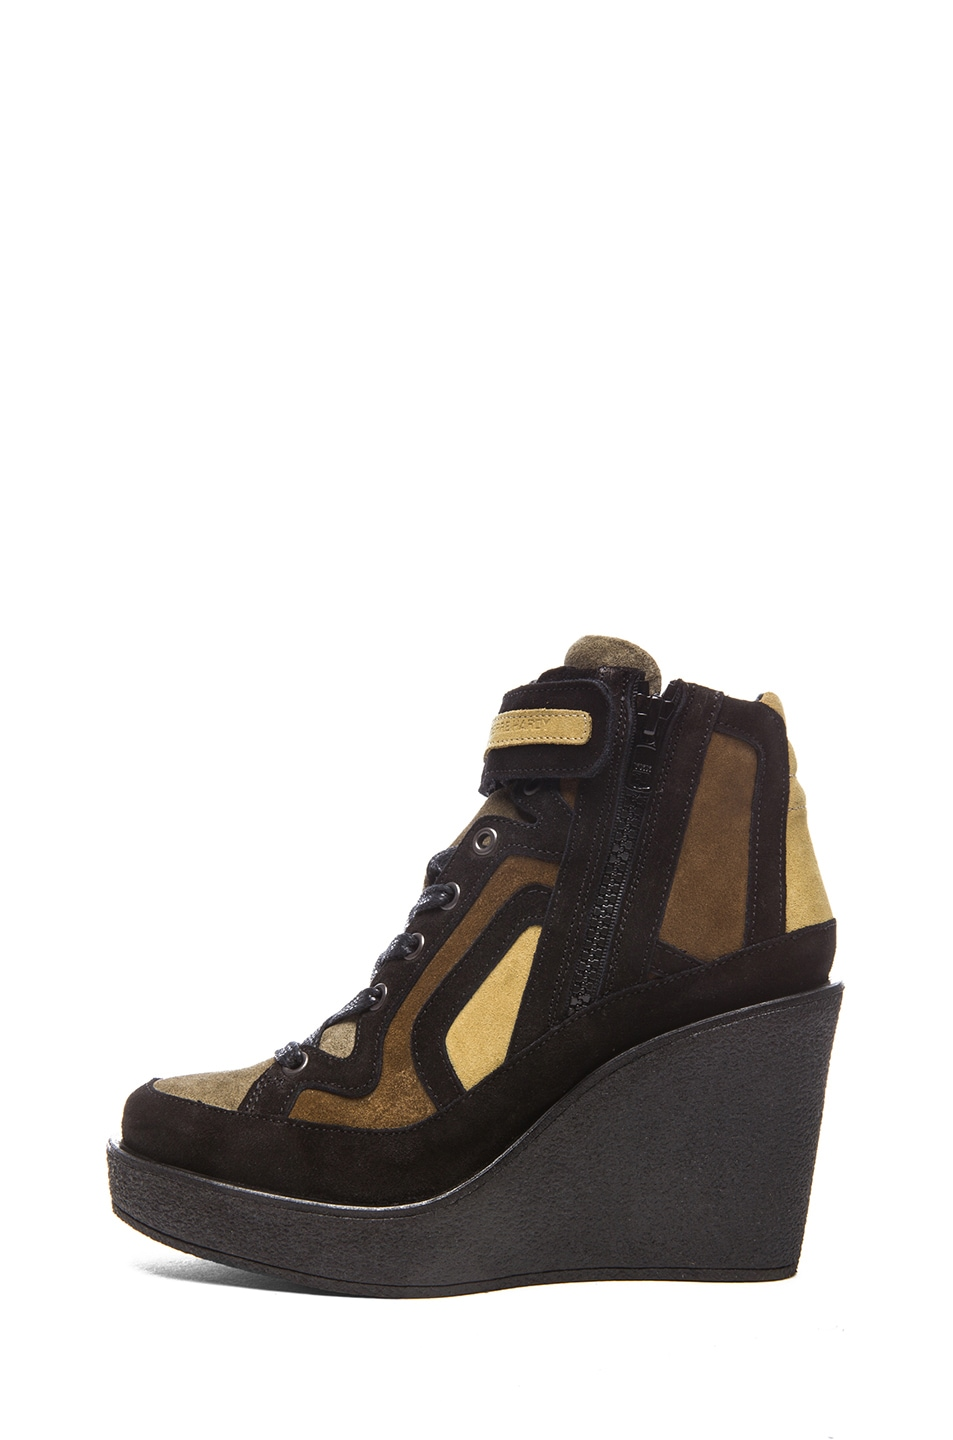 Image 1 of Pierre Hardy Suede Wedge Sneakers in Quadri Camouflage